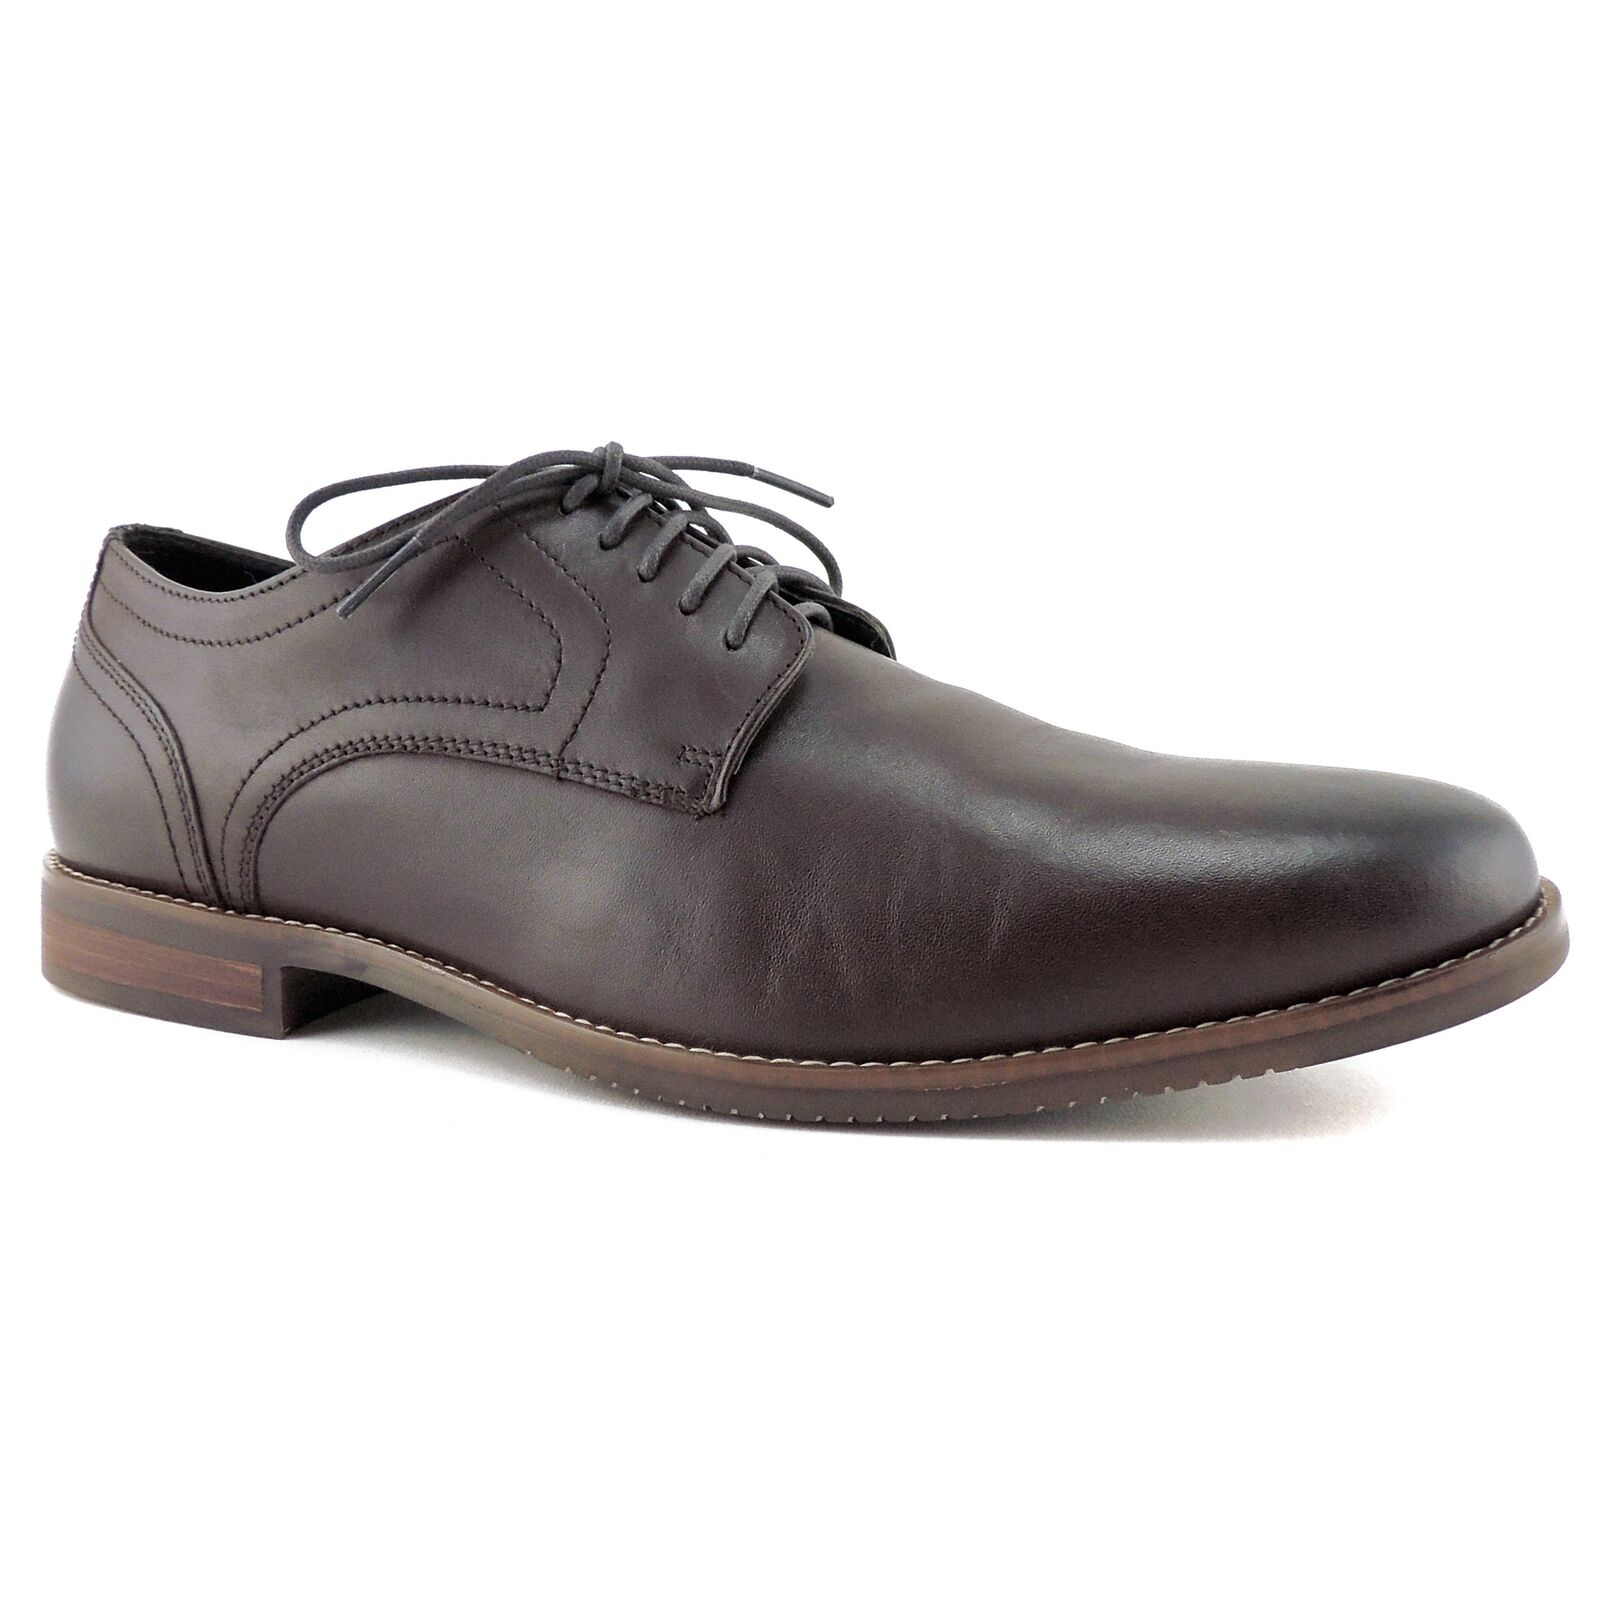 Rockport Men's Style Purpose Oxfords Lace up DK Brown Leather Size 11.5 M